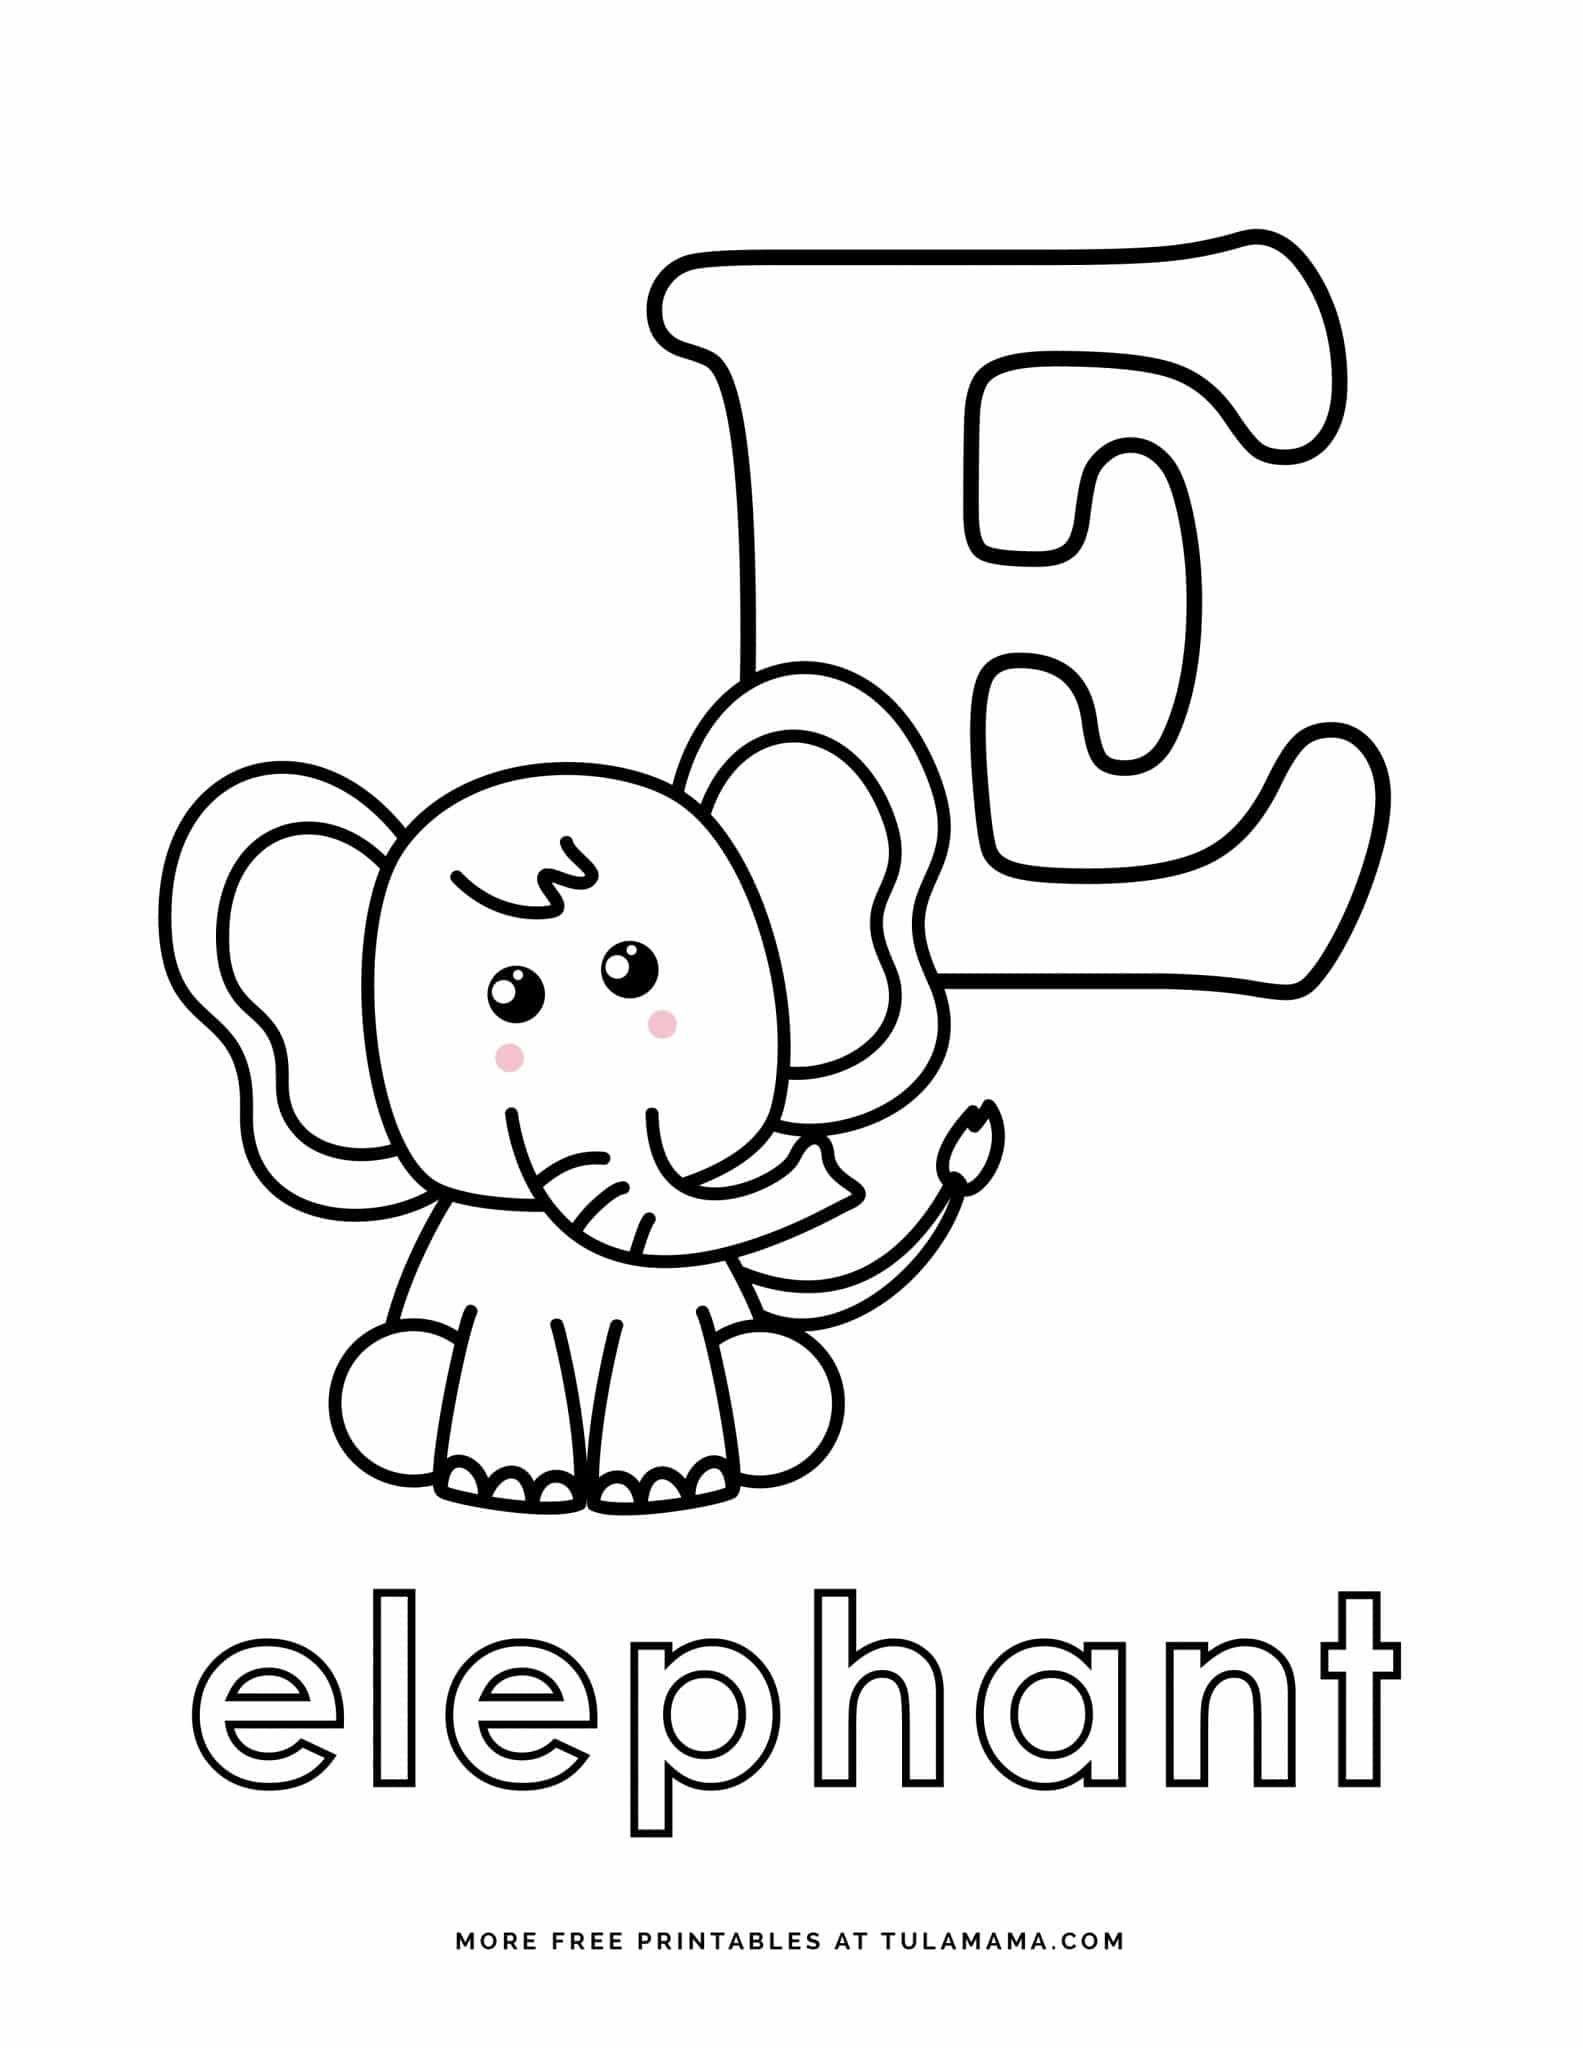 Fun And Easy To Print Abc Coloring Pages For Preschoolers Kindergartners In 2021 Abc Coloring Pages Abc Coloring Alphabet Coloring Pages